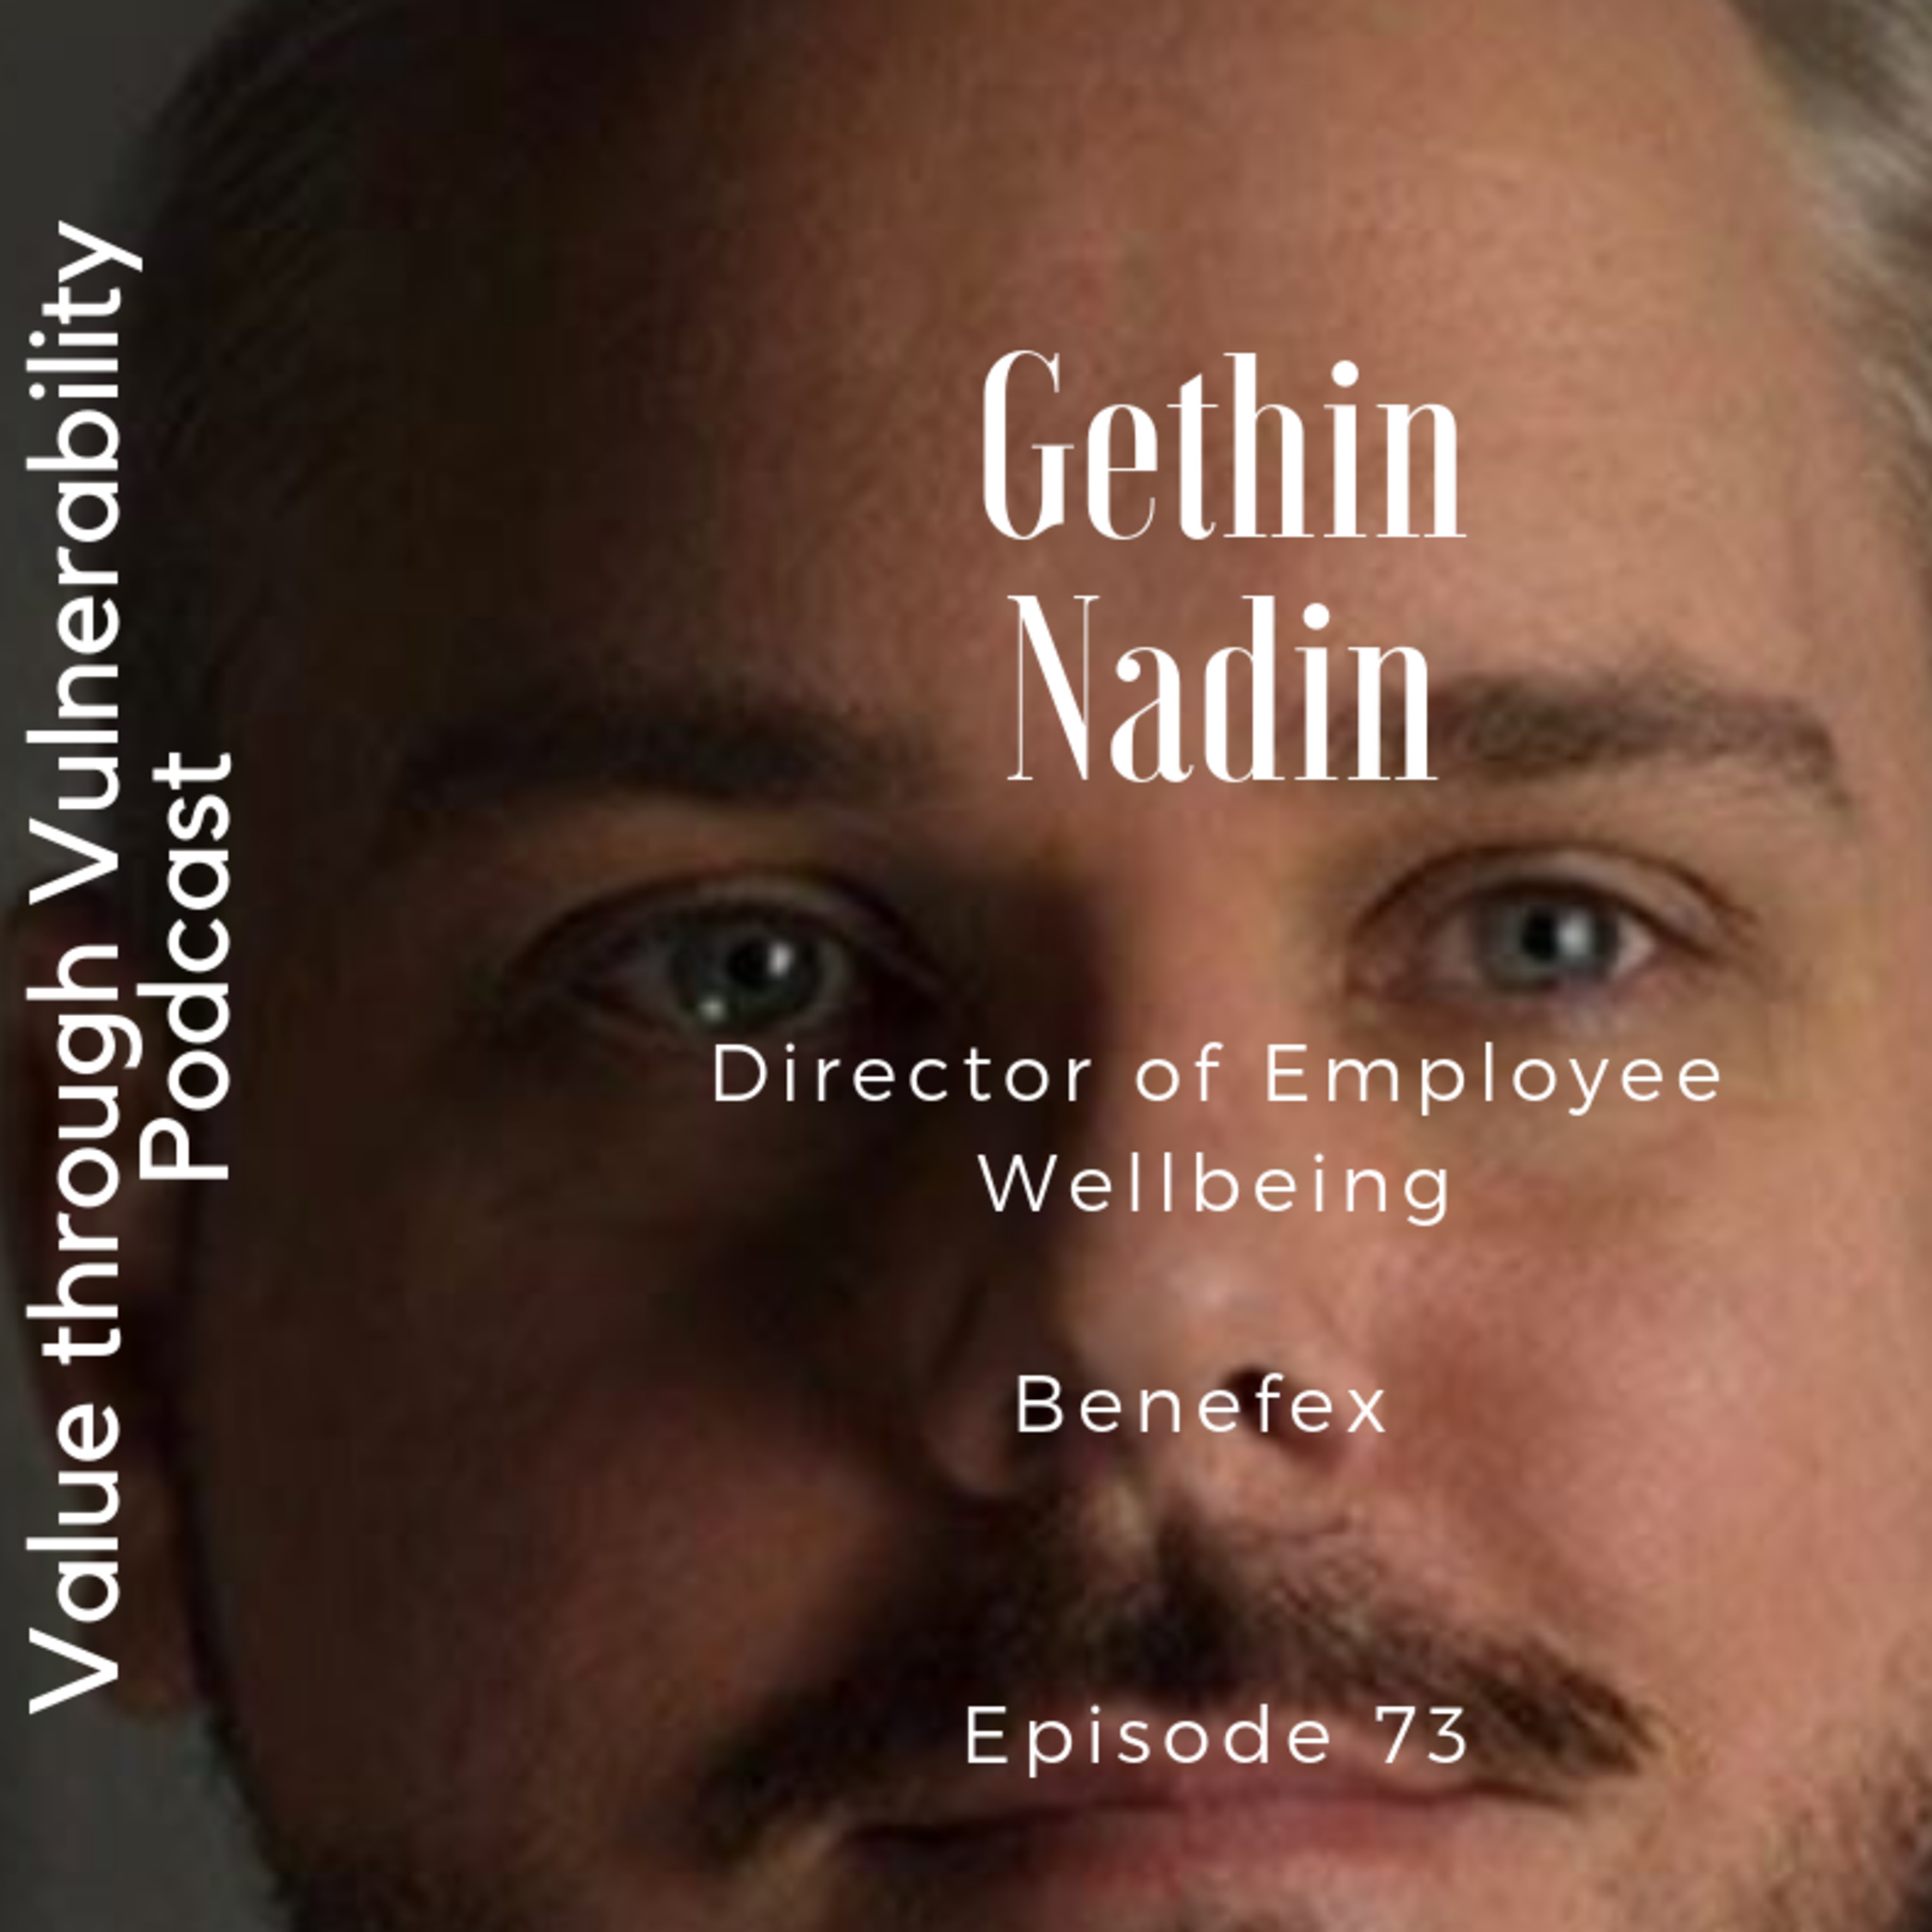 Episode 73 - Gethin Nadin, Director of Employee Wellbeing at Benefex